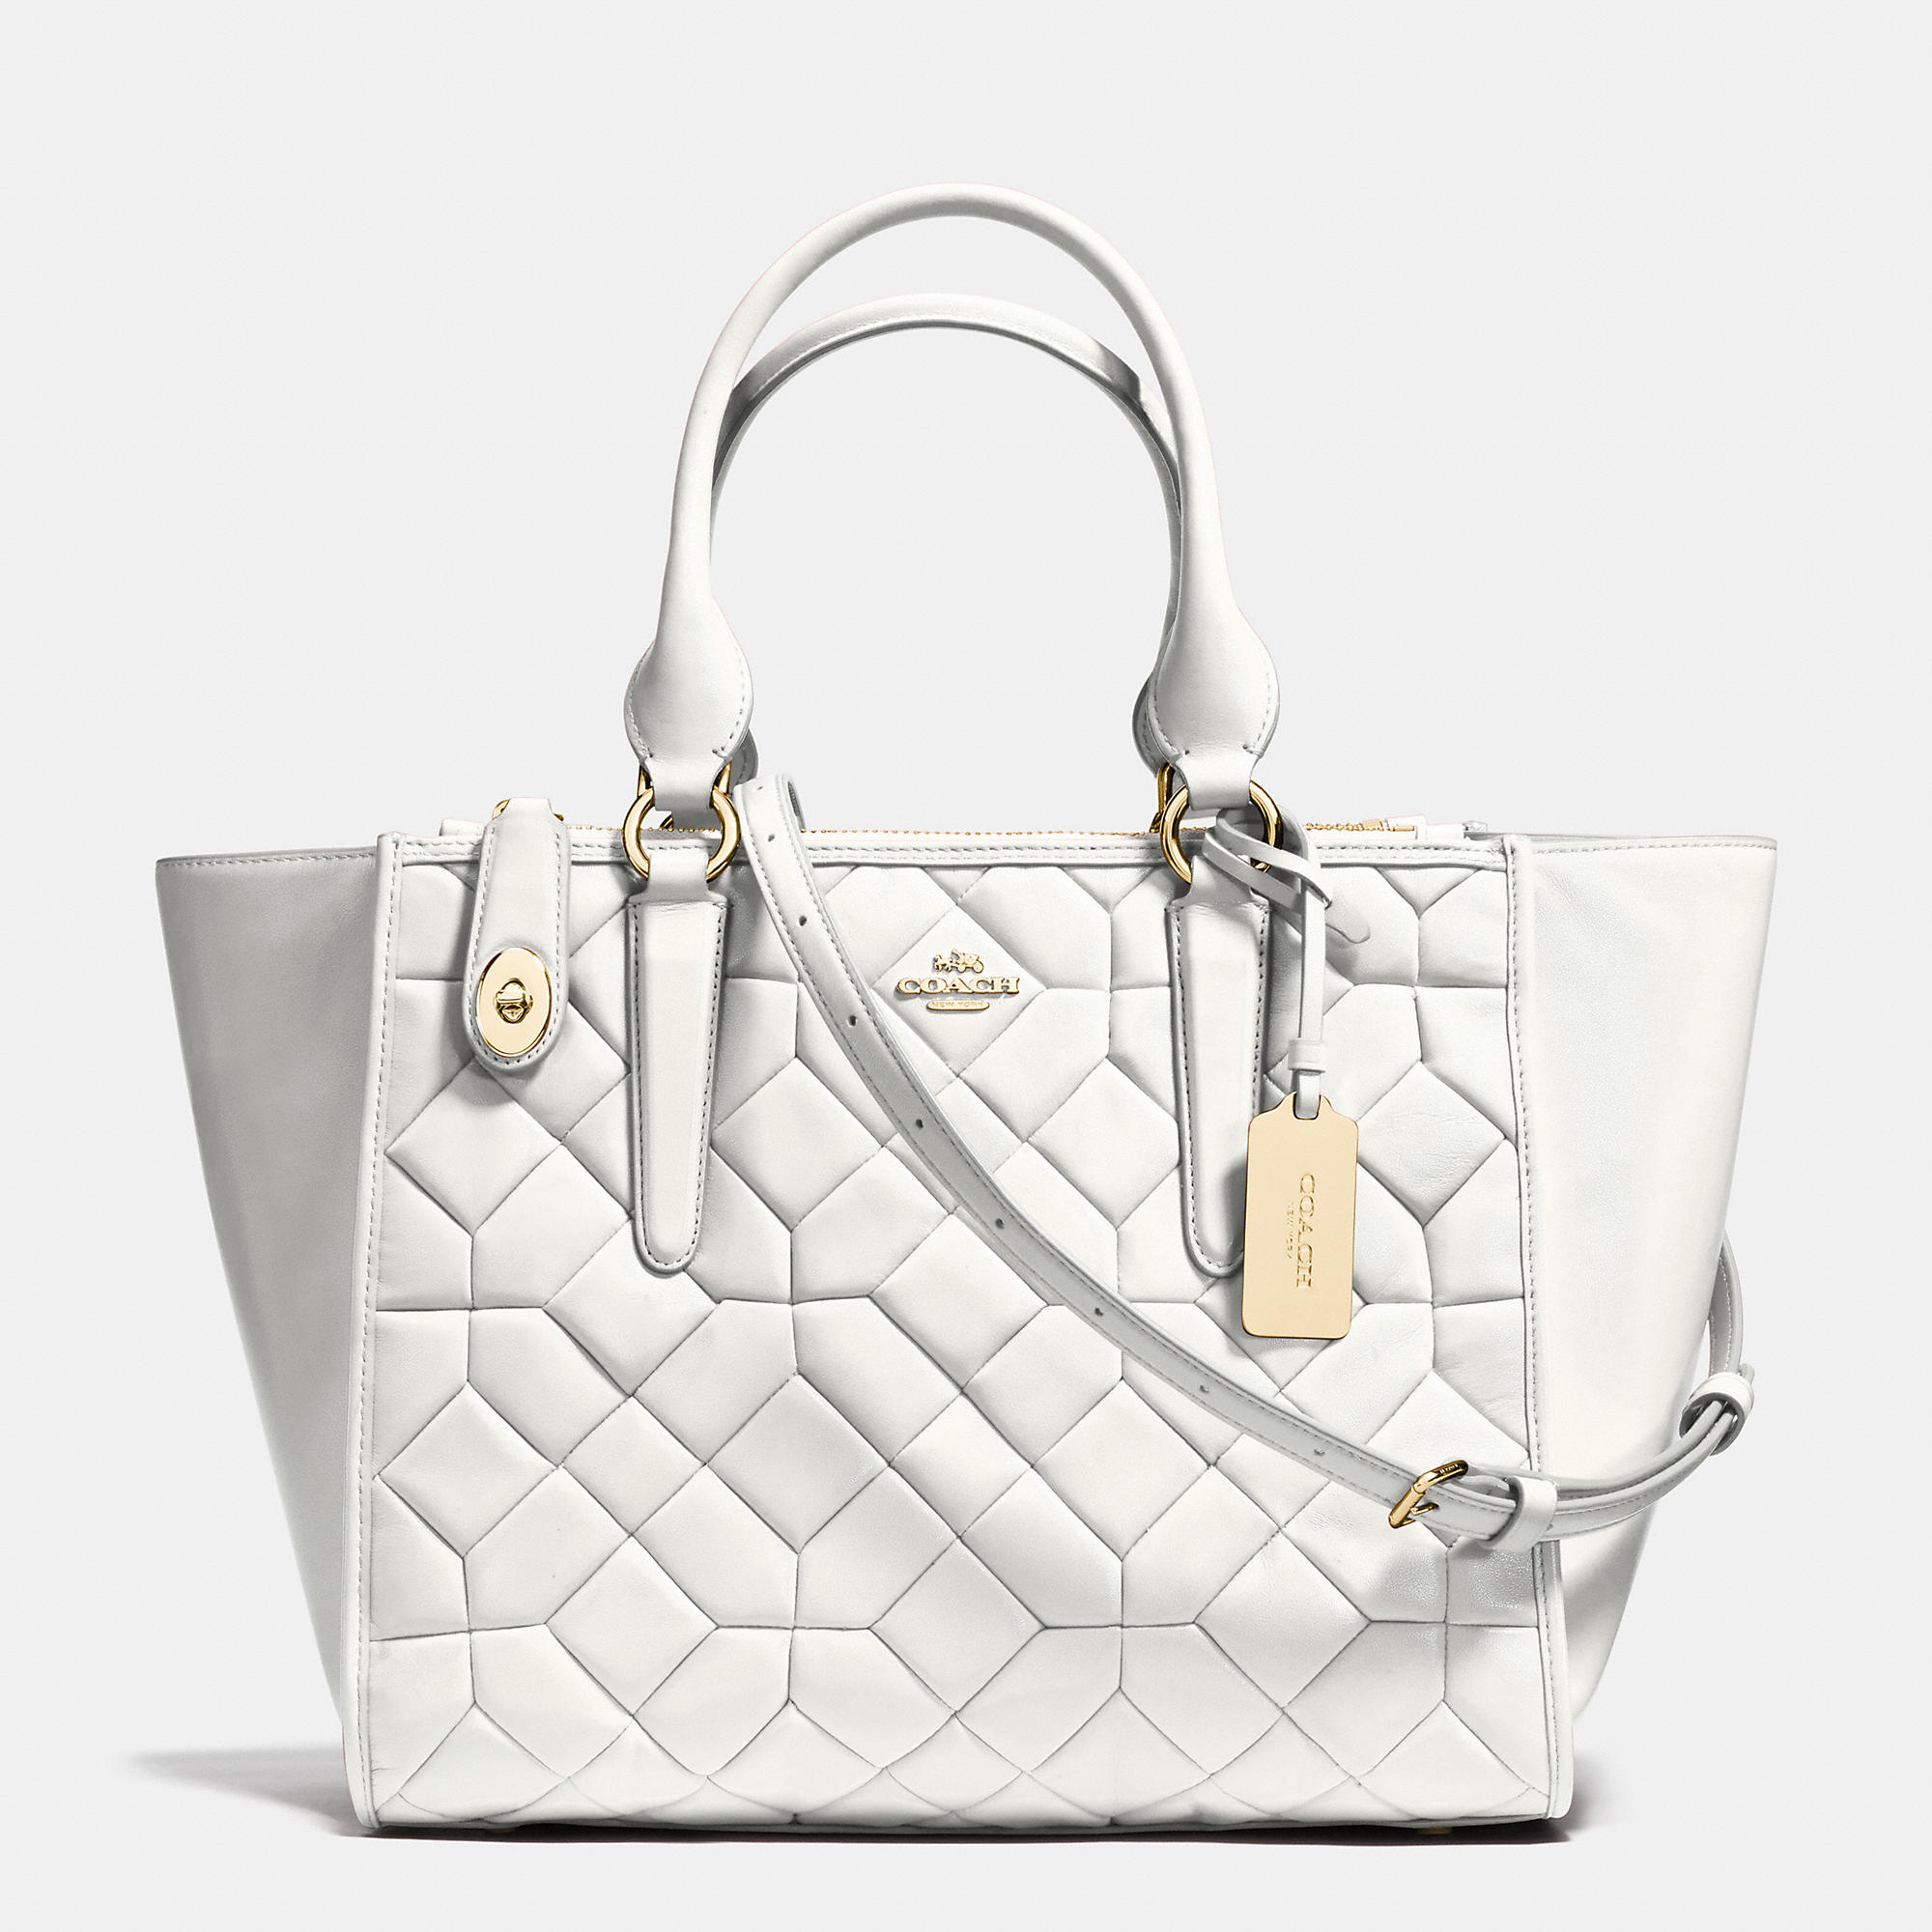 Lyst - COACH Crosby Carryall In Canyon Quilt Leather 8890ccc772